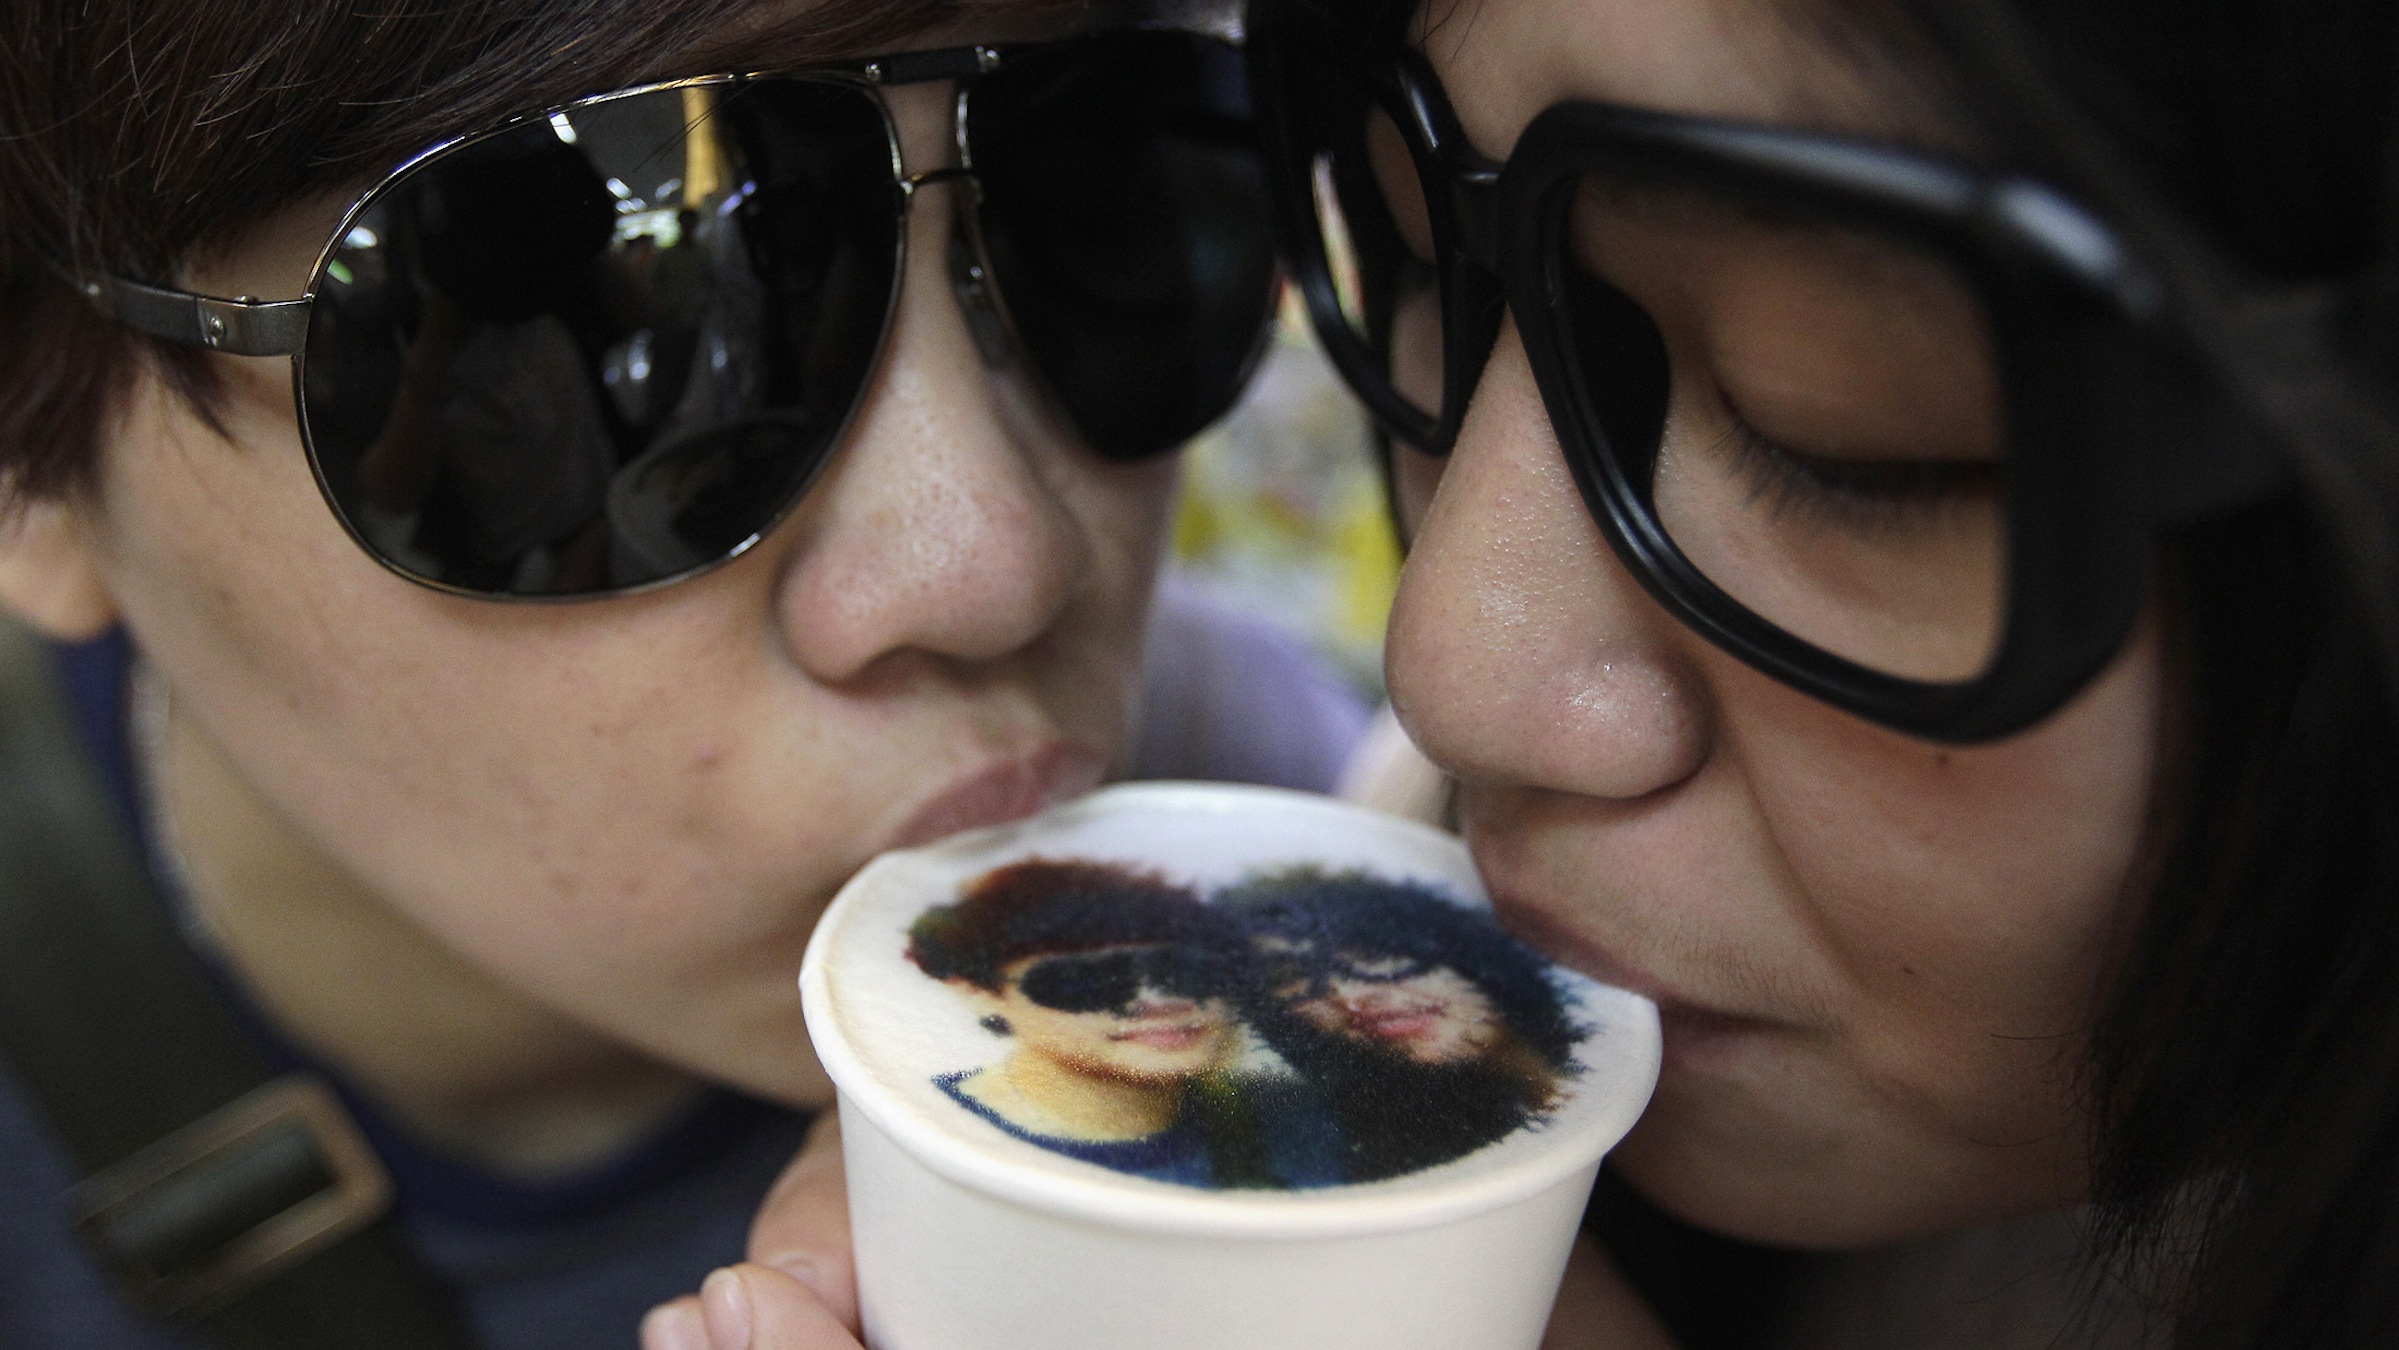 A couple drinks a cup of latte with their picture printed on top of the milk foam at a Family Mart in Taipei August 13, 2013. As part of Qixi Festival celebrations, customers of Family Mart's Let's Cafe were given the complimentary service of getting their pictures printed with edible inks on their lattes, according to a Family Mart employee. Qixi, also known as the Double Seventh Festival and the Chinese version of Valentine's Day, falls on the seventh day of the seventh month in the Chinese lunar calendar. REUTERS/Pichi Chuang (TAIWAN - Tags: ANNIVERSARY SOCIETY TPX IMAGES OF THE DAY) - RTX12JEZ